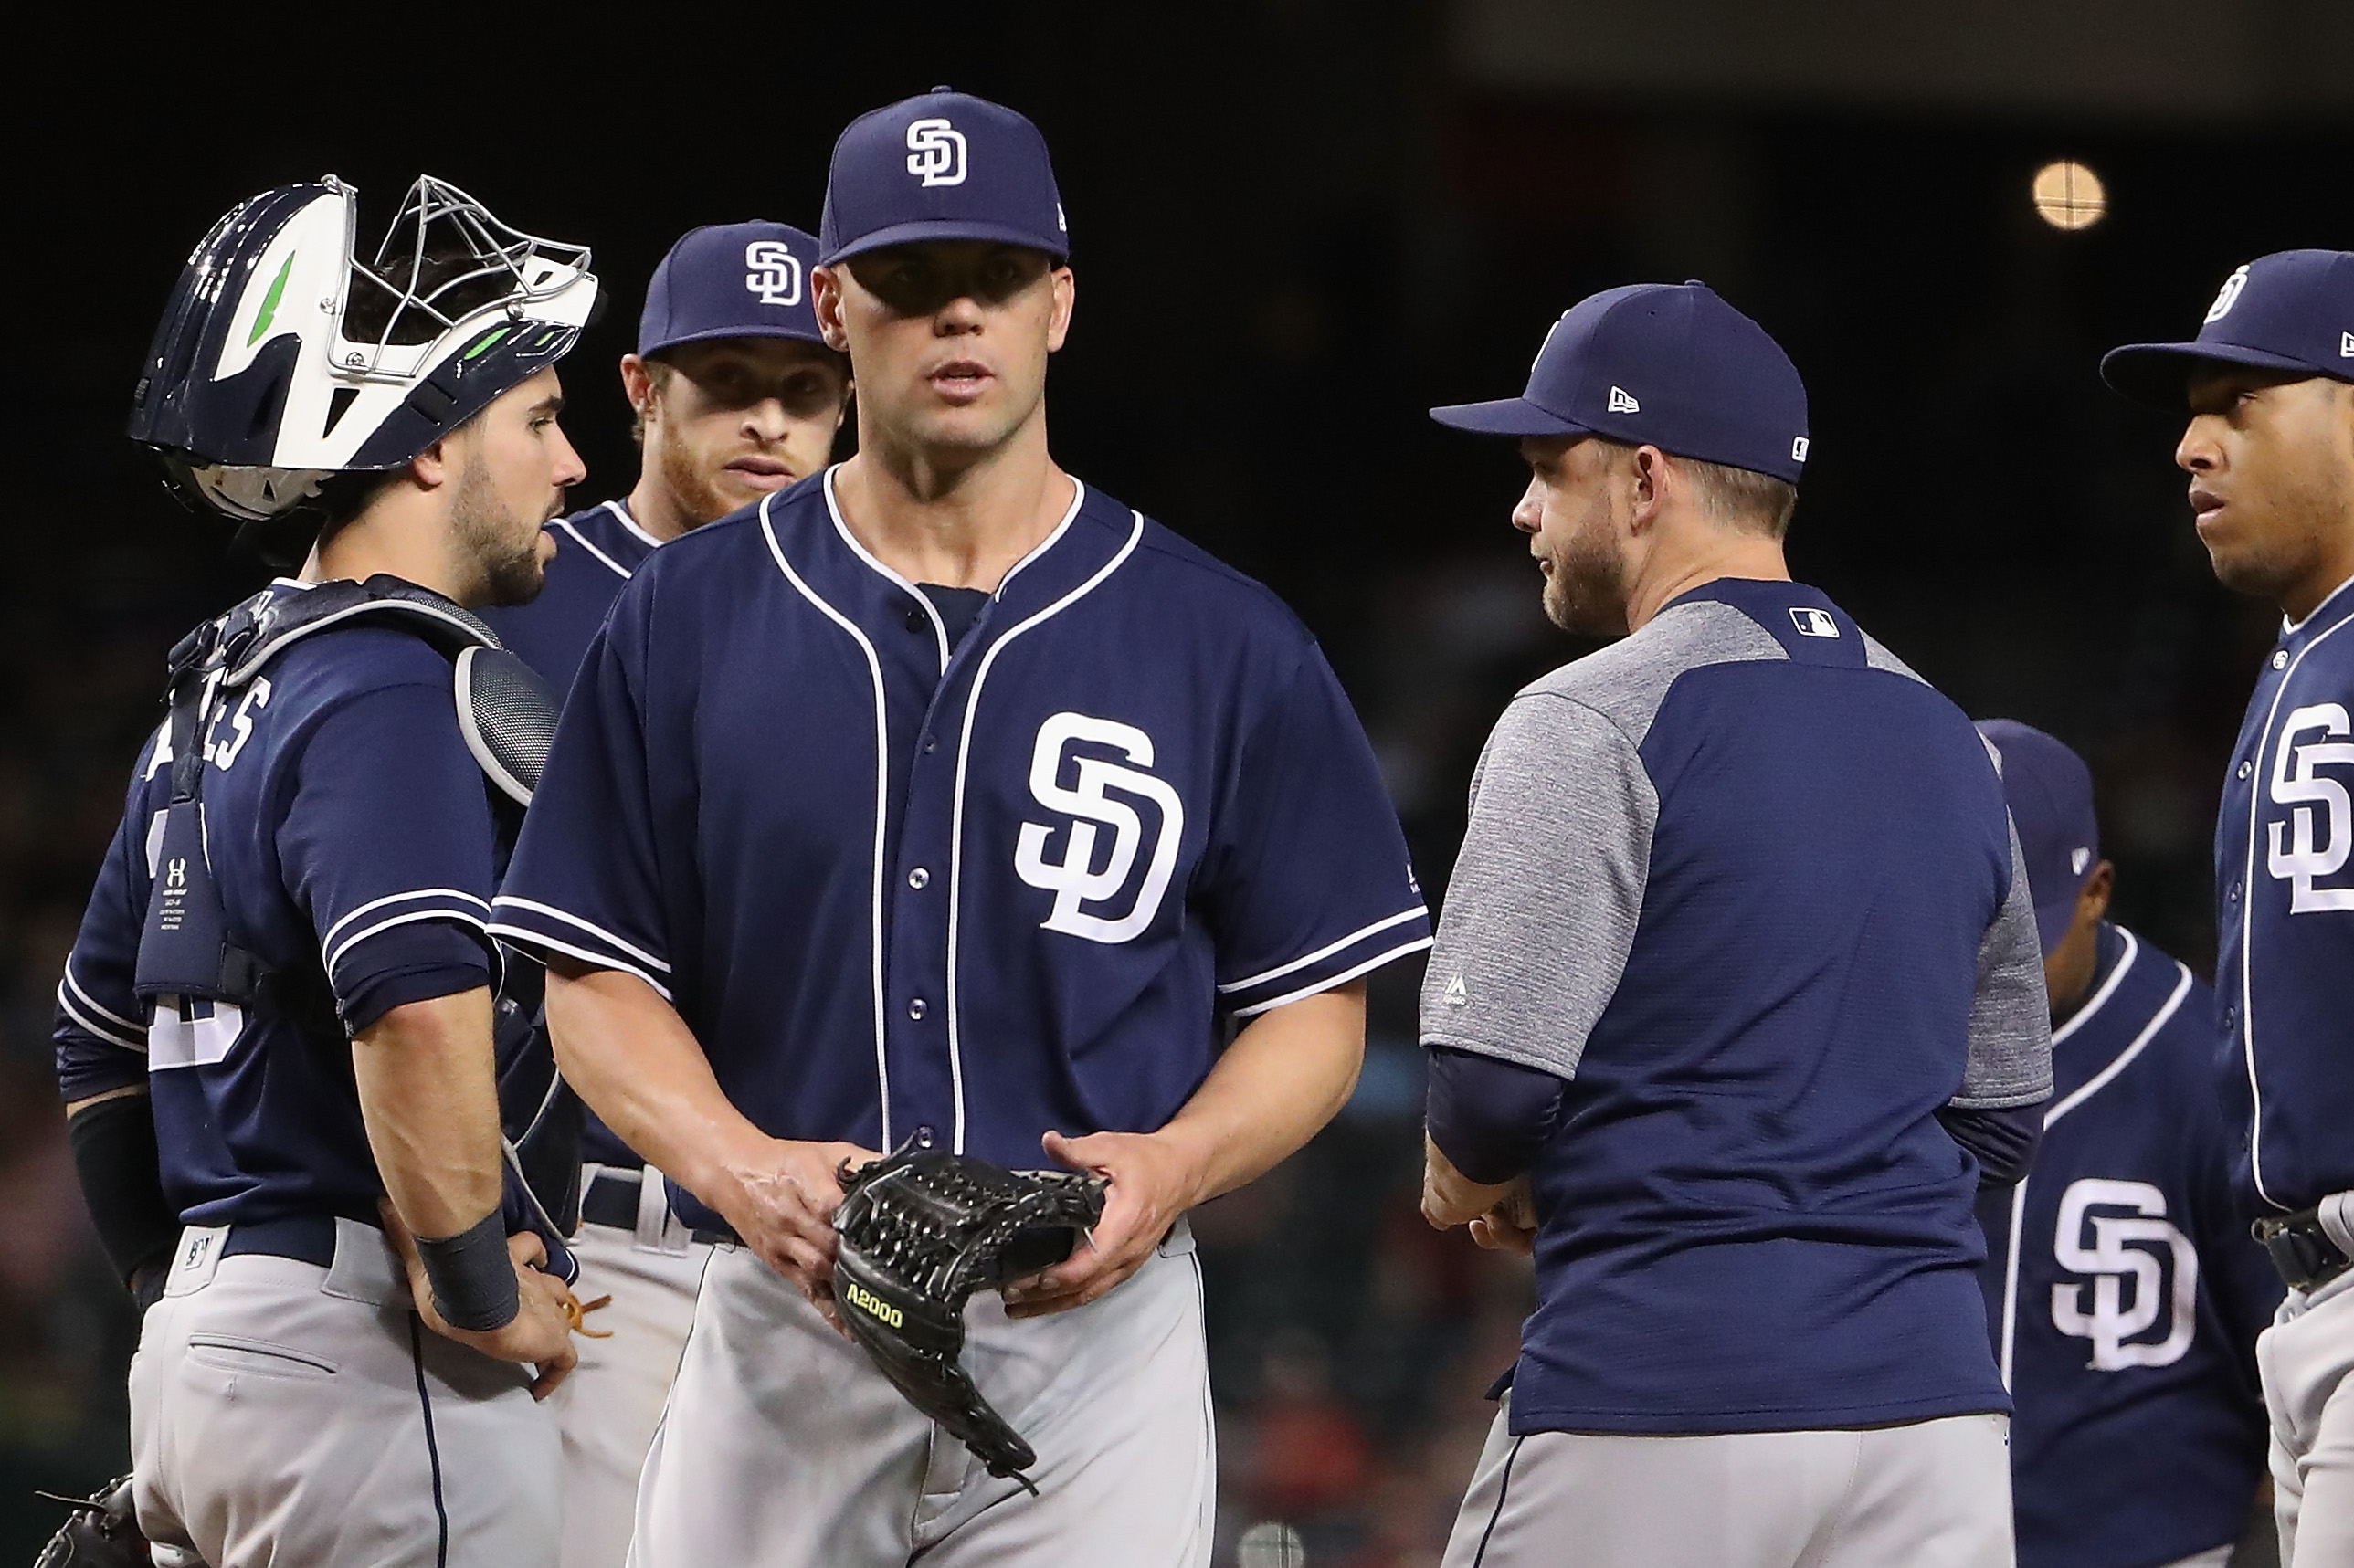 PHOENIX, AZ - APRIL 25: Starting pitcher Clayton Richard #3 (second from left) of the San Diego Padres is removed by manager Andy Green #14 during the fourth inning of the MLB game at Chase Field on April 25, 2017 in Phoenix, Arizona. (Photo by Christian Petersen/Getty Images)